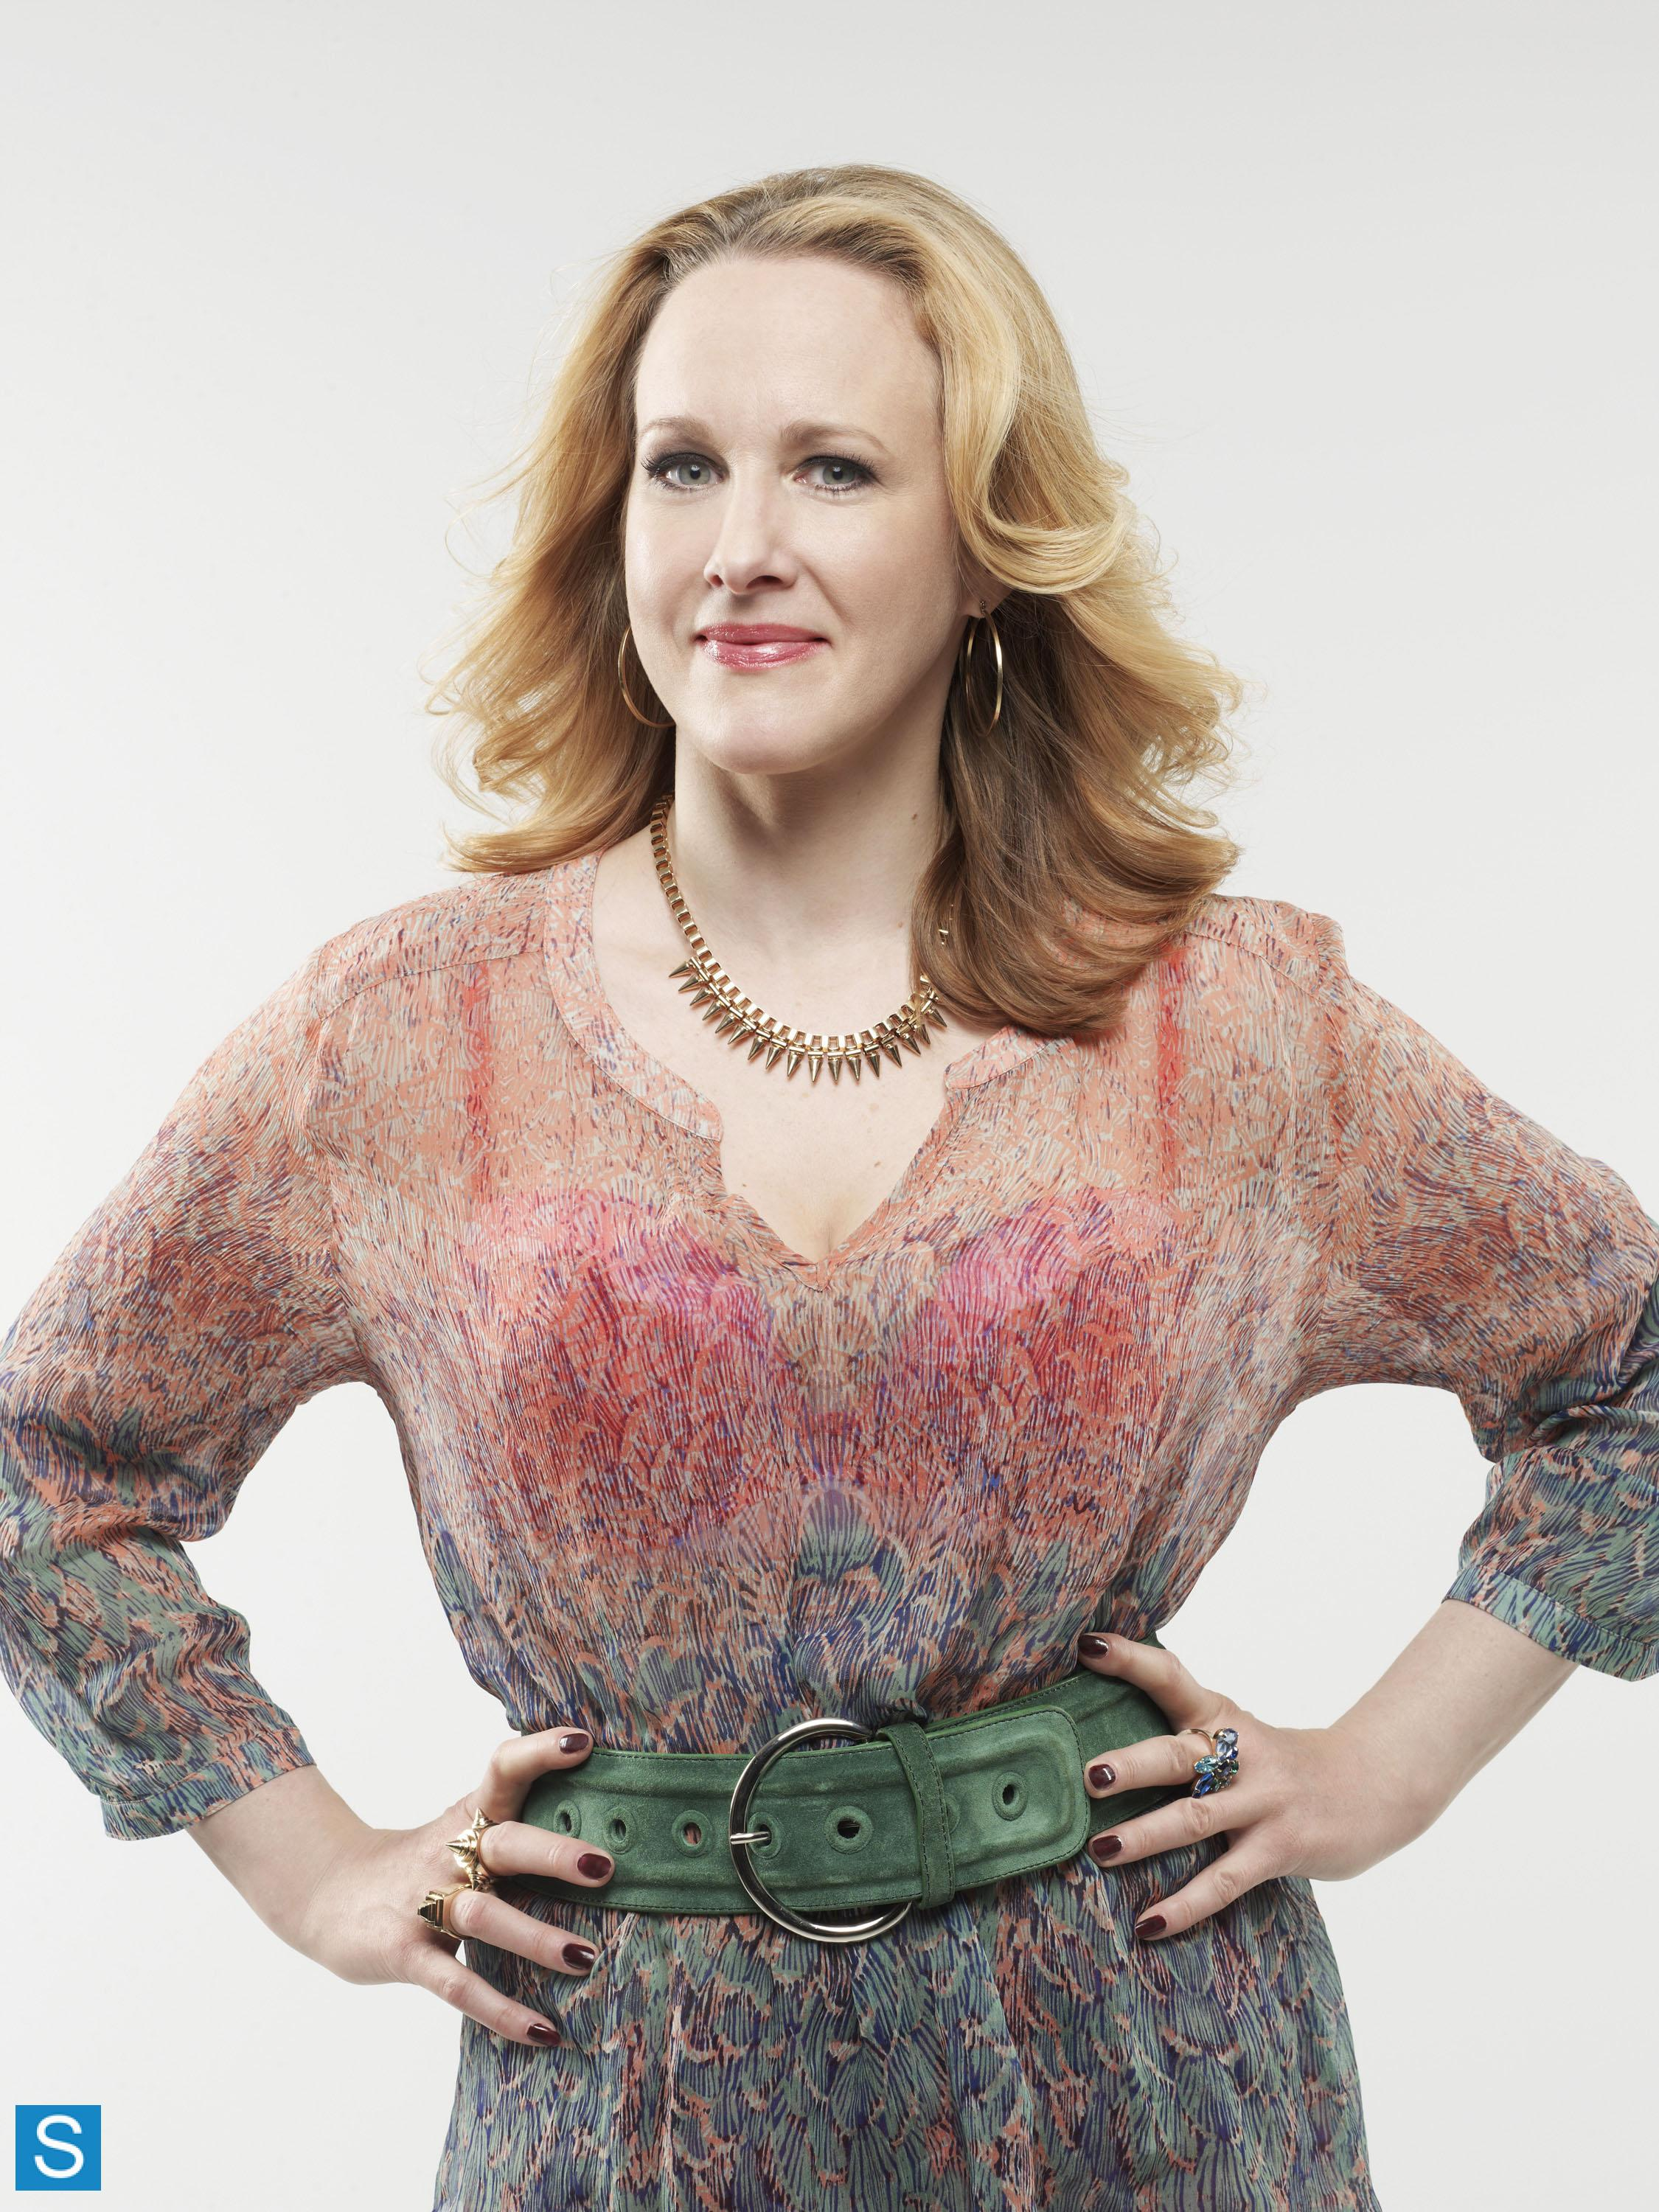 katie finneran companykatie finneran frasier, katie finneran height, katie finneran net worth, katie finneran annie, katie finneran noises off, katie finneran imdb, katie finneran company, katie finneran husband, katie finneran wiki, katie finneran broadway, katie finneran you've got mail, katie finneran miss hannigan, katie finneran promises promises, katie finneran darren goldstein, katie finneran sex and the city, katie finneran ibdb, katie finneran, katie finneran feet, katie finneran hot, katie finneran it only a play